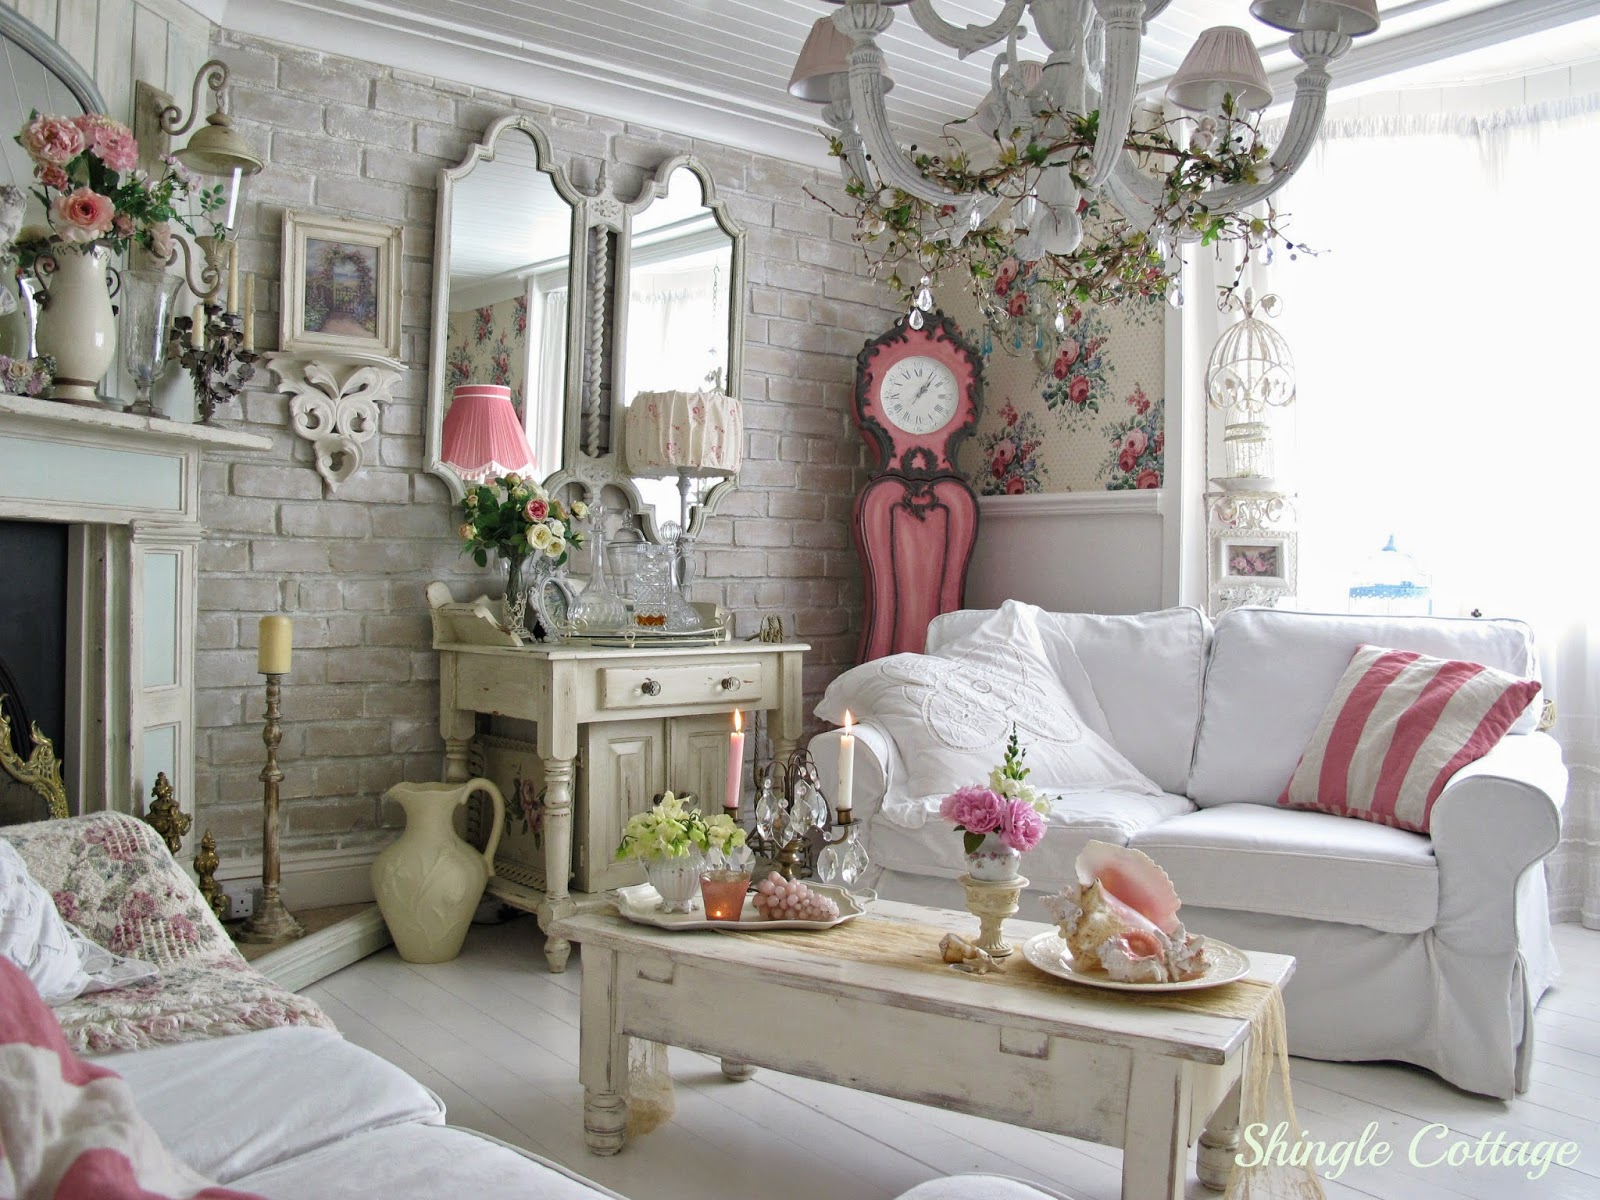 1000 images about shabby chic on pinterest pamela anderson kirstie alley and coastal homes. Black Bedroom Furniture Sets. Home Design Ideas